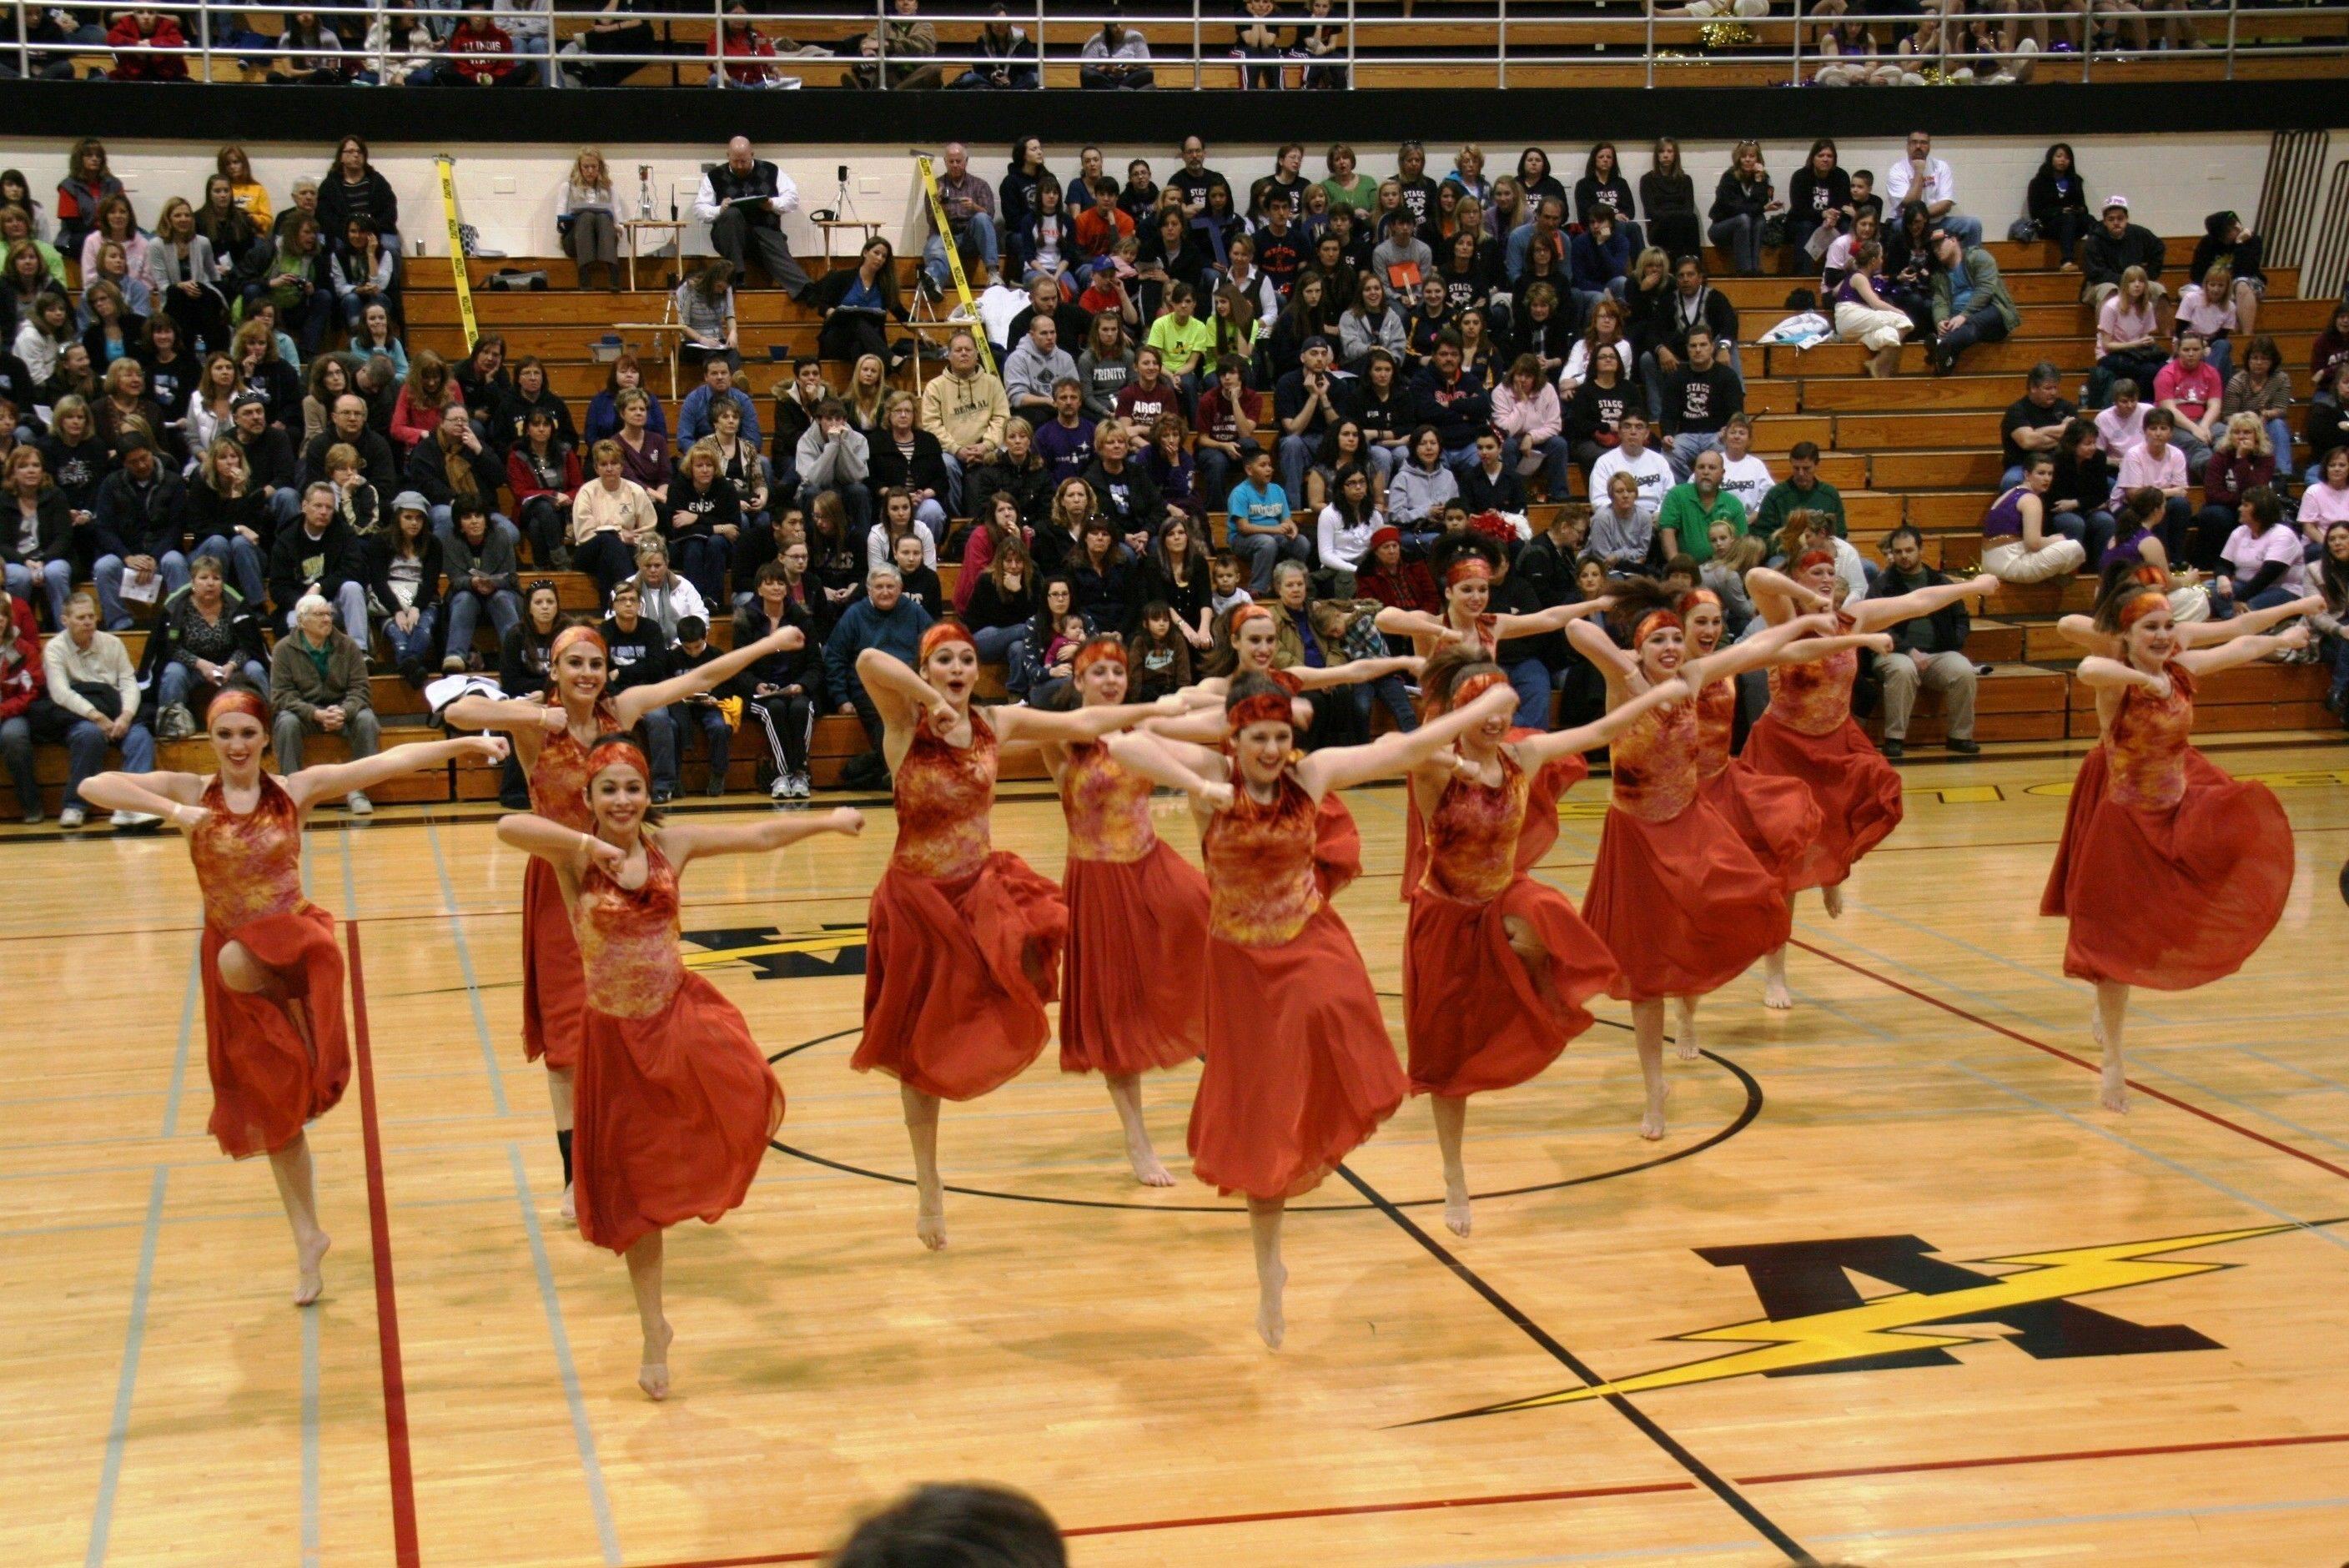 Suburban high schools flock to TeamDance championships in Peoria